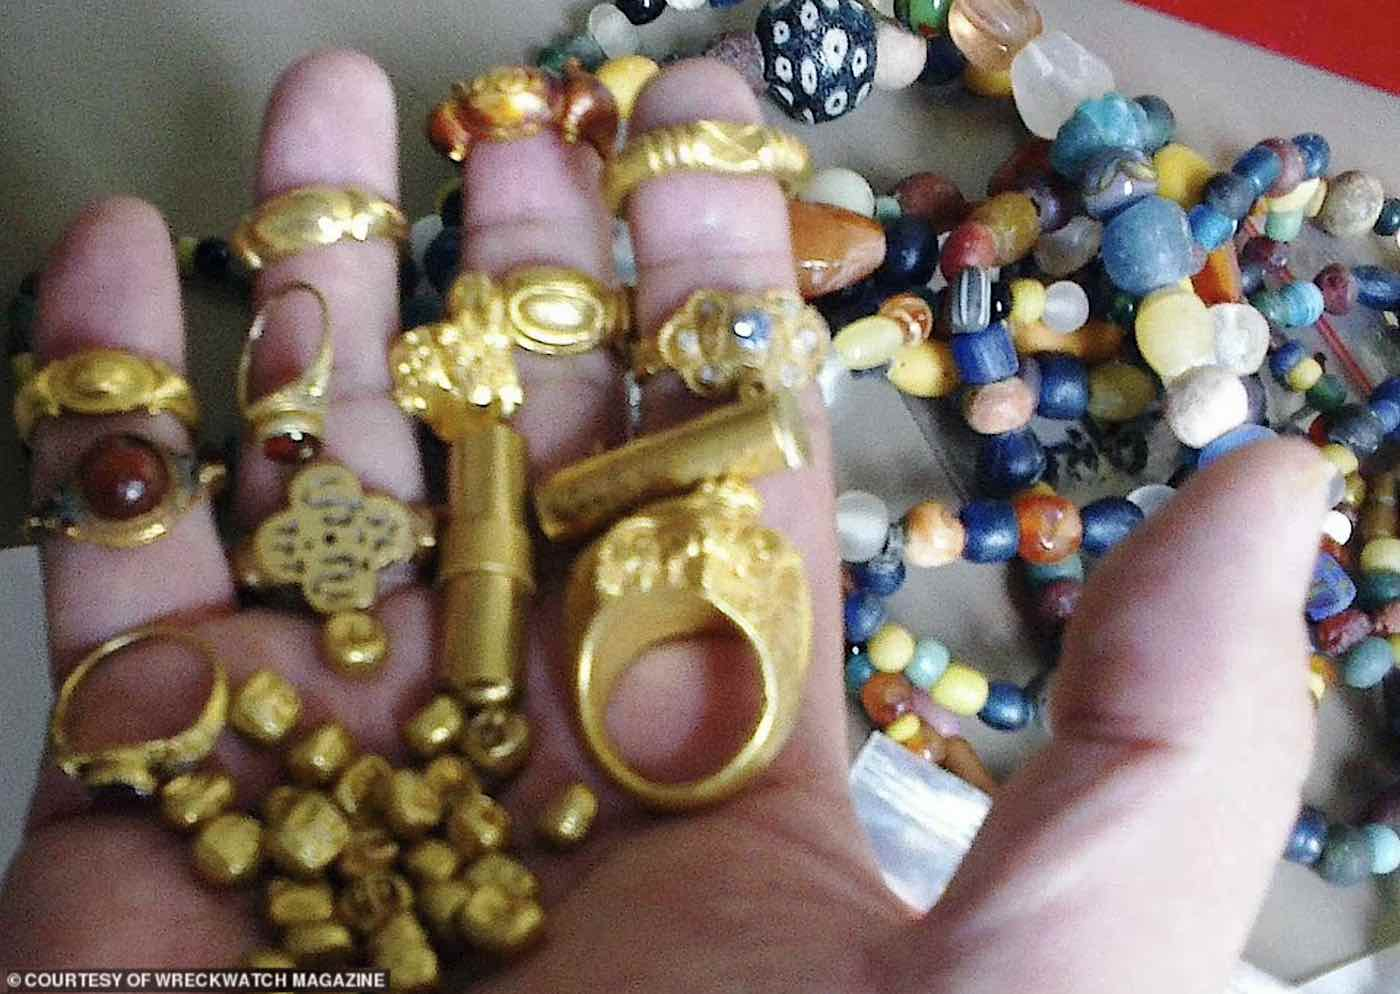 A Lost Sunken City of Gold and Jewels Found in the Mud of Indonesian River